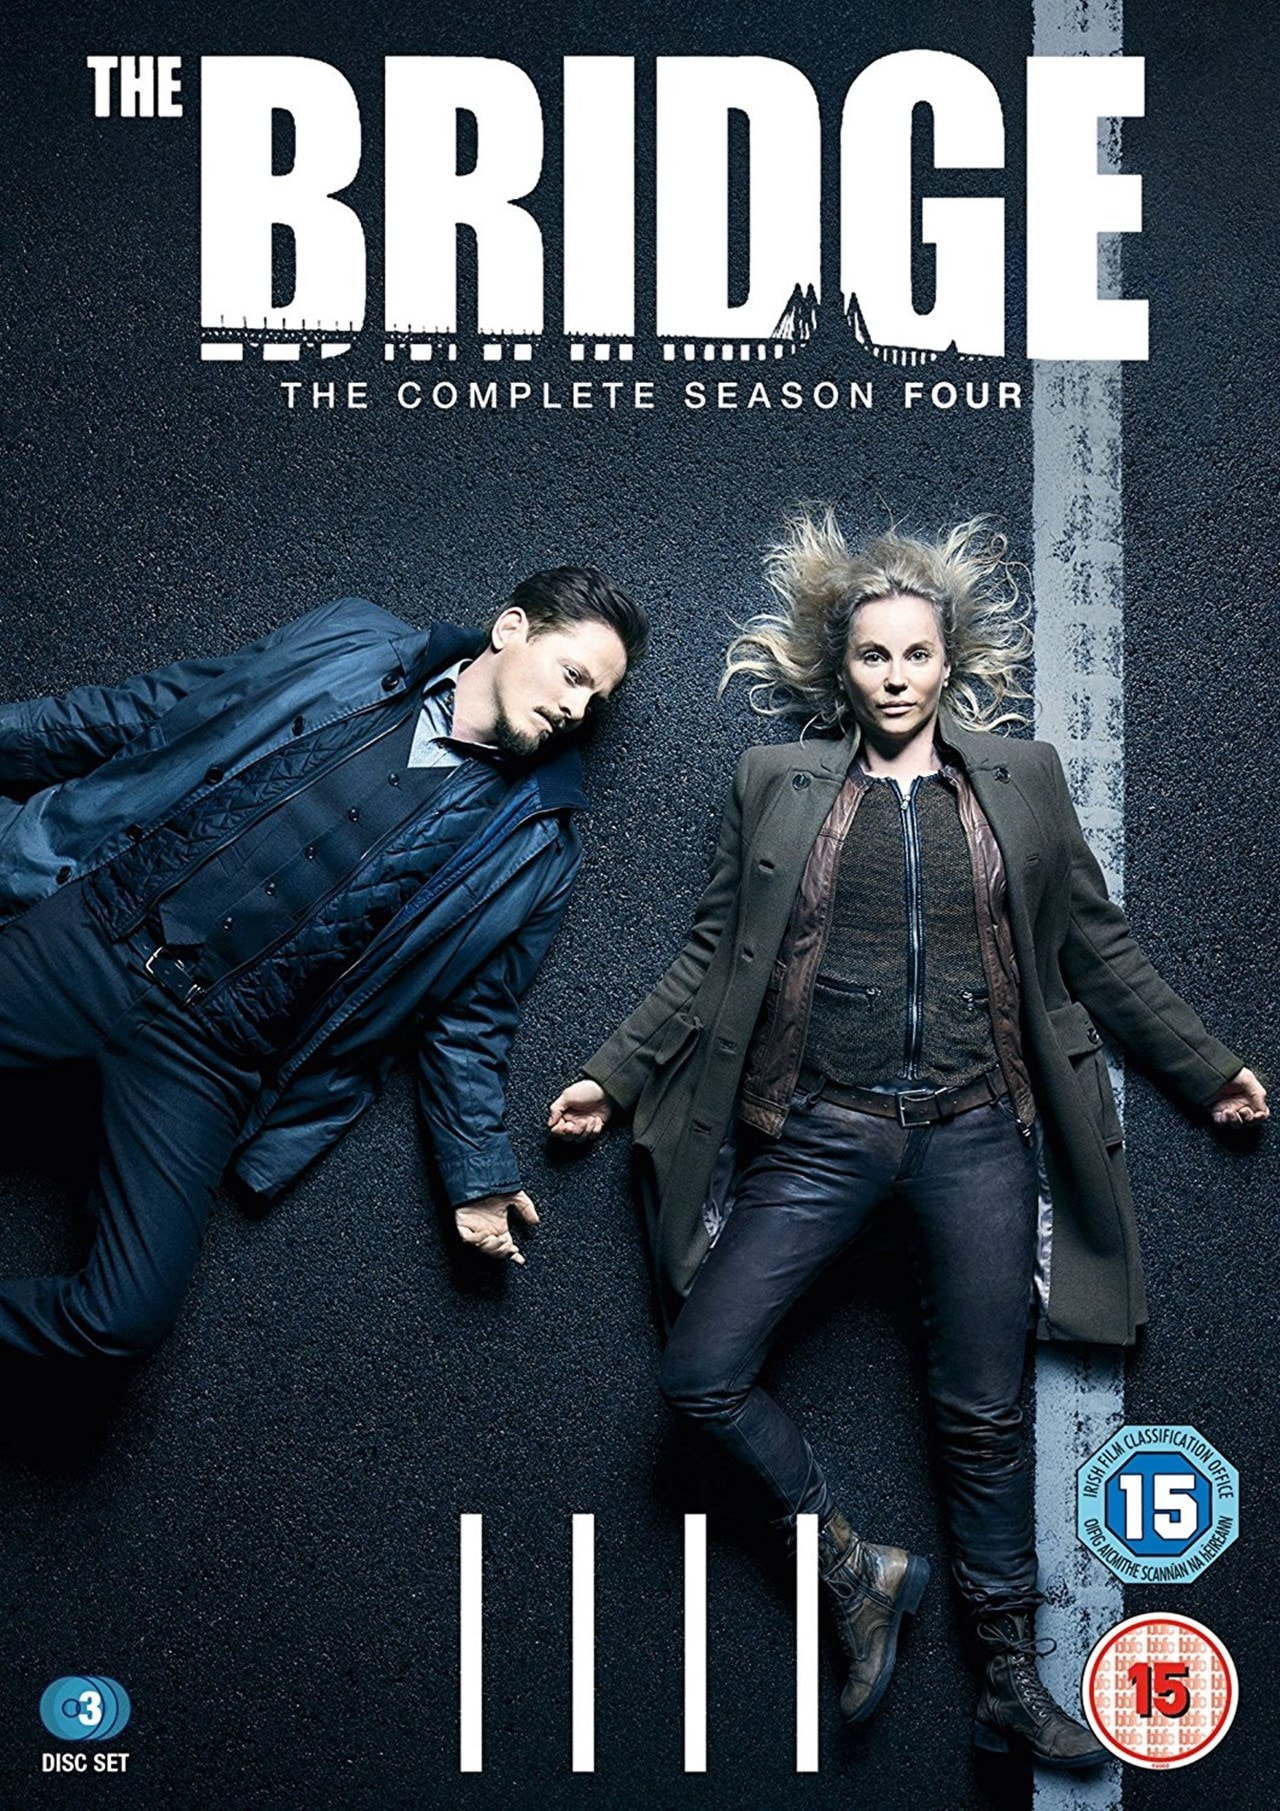 The Bridge: The Complete Season Four - 1